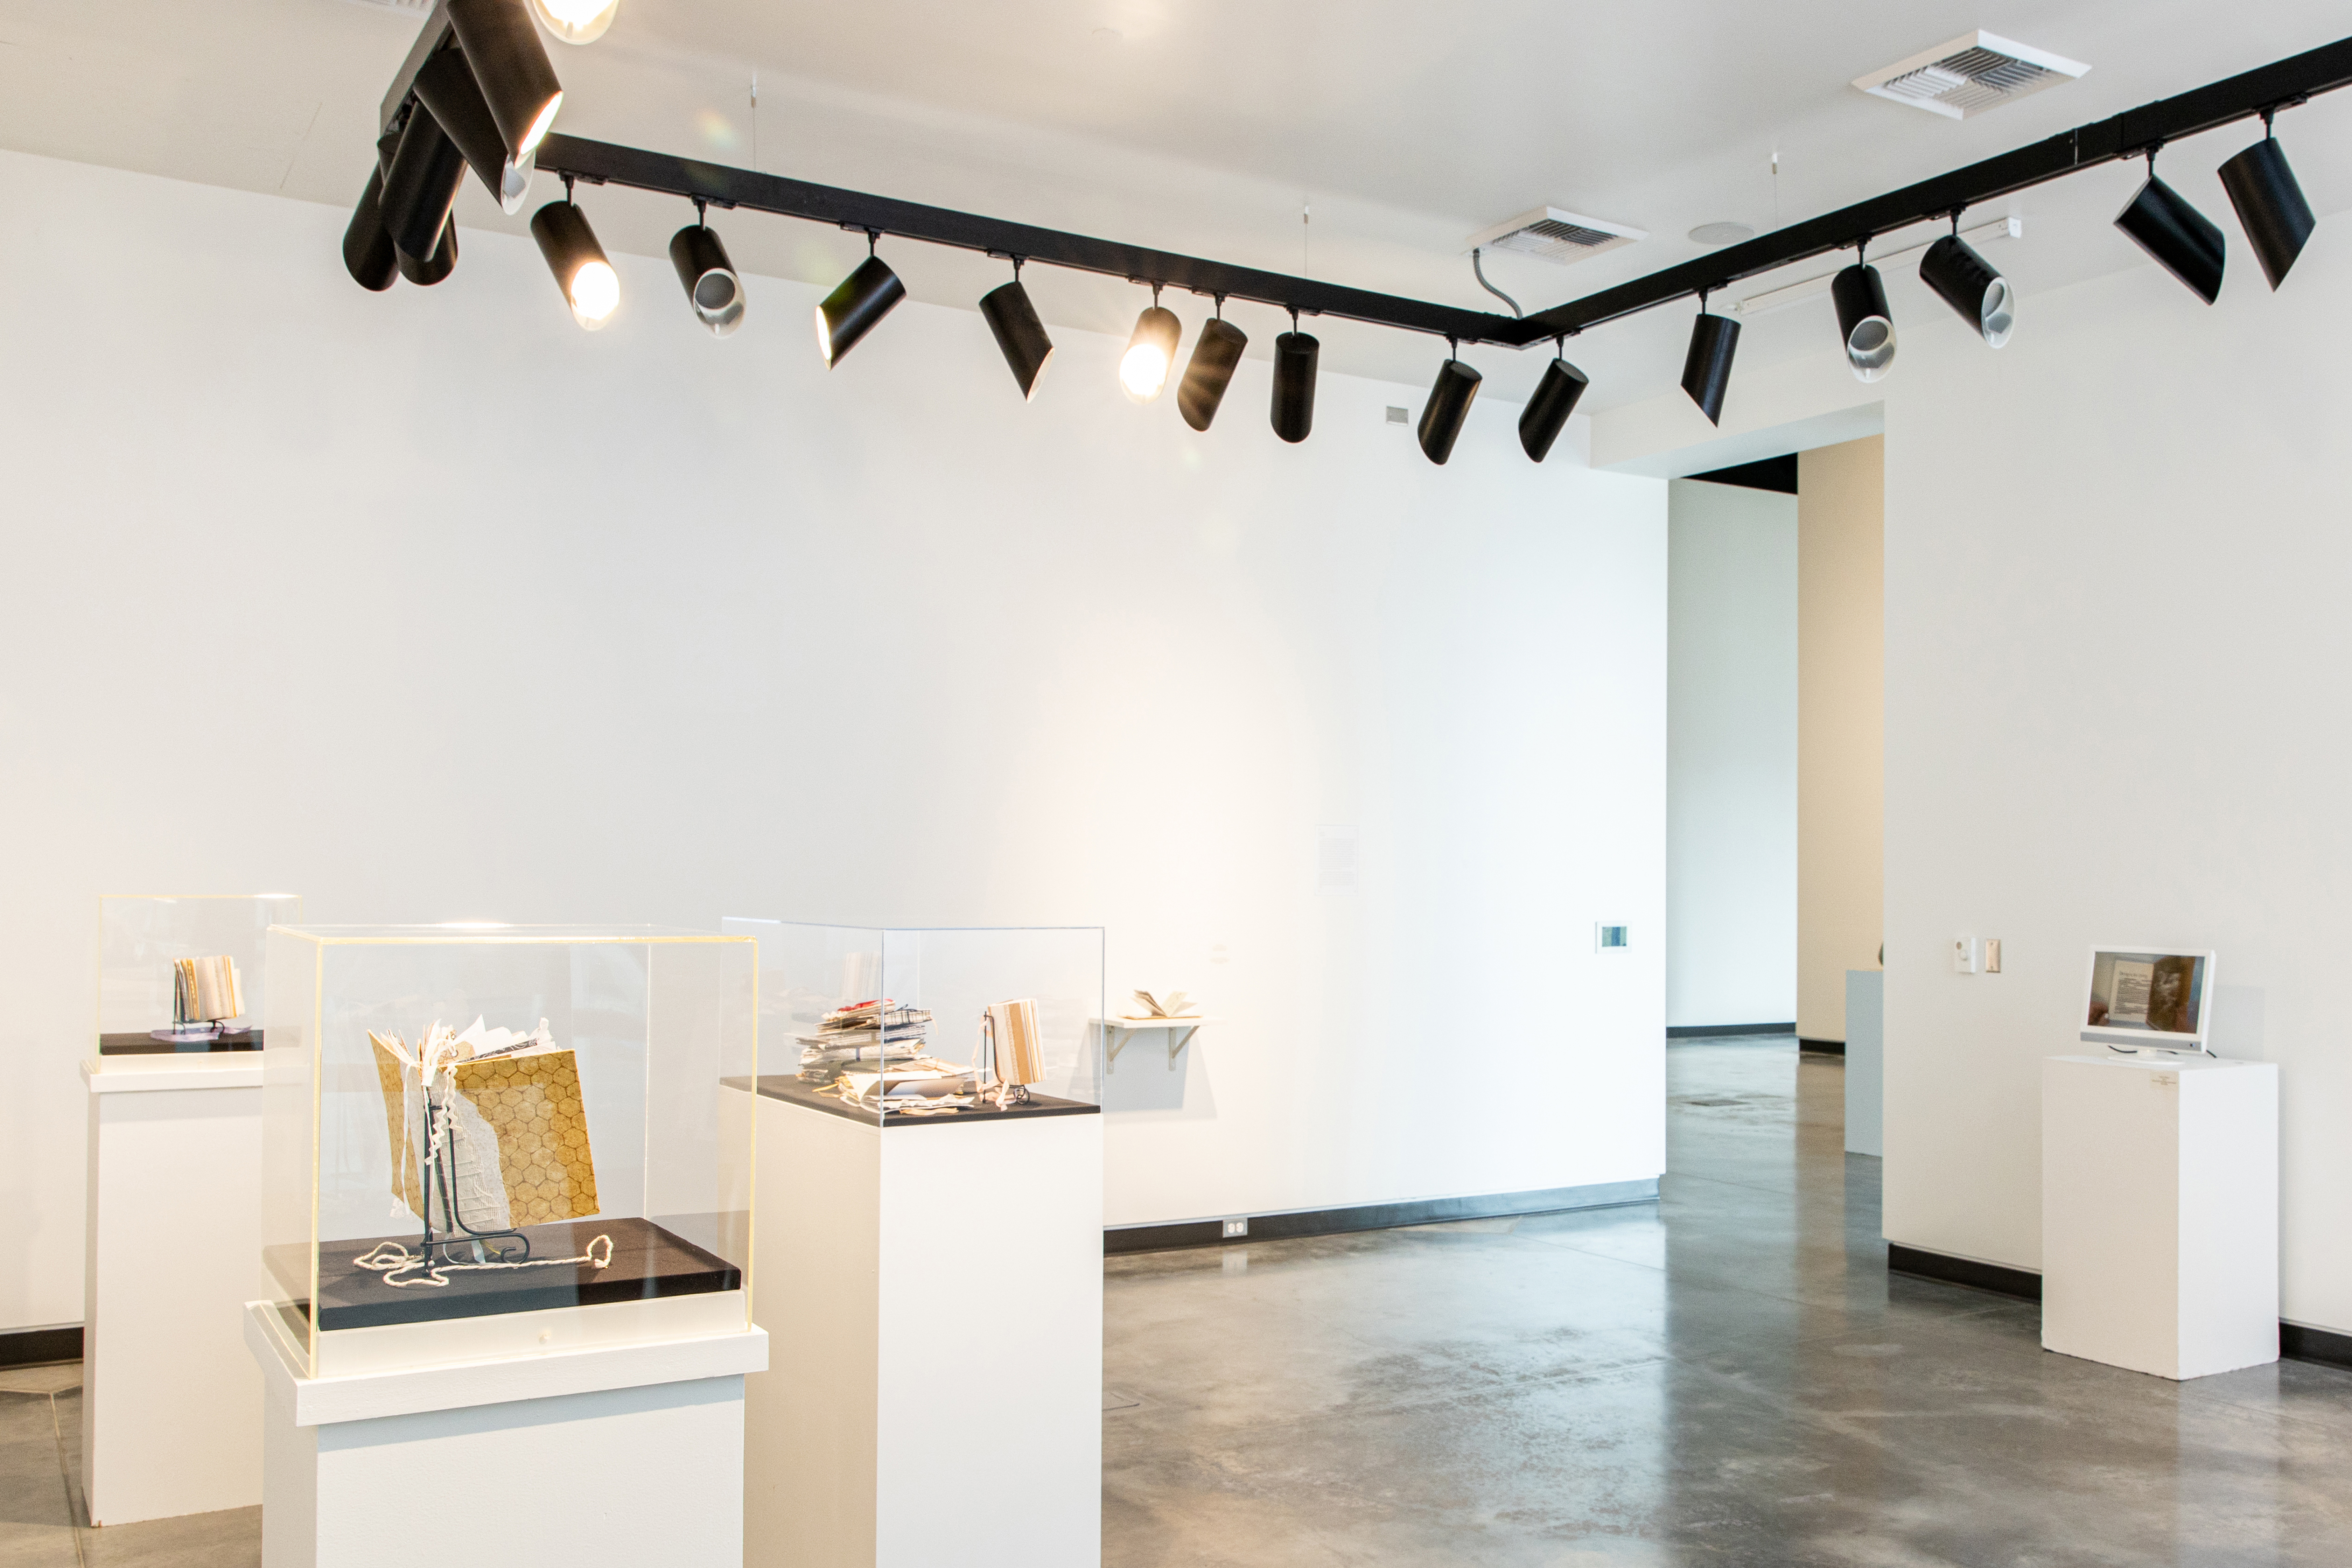 Student gallery space with art displayed on white pedestals.